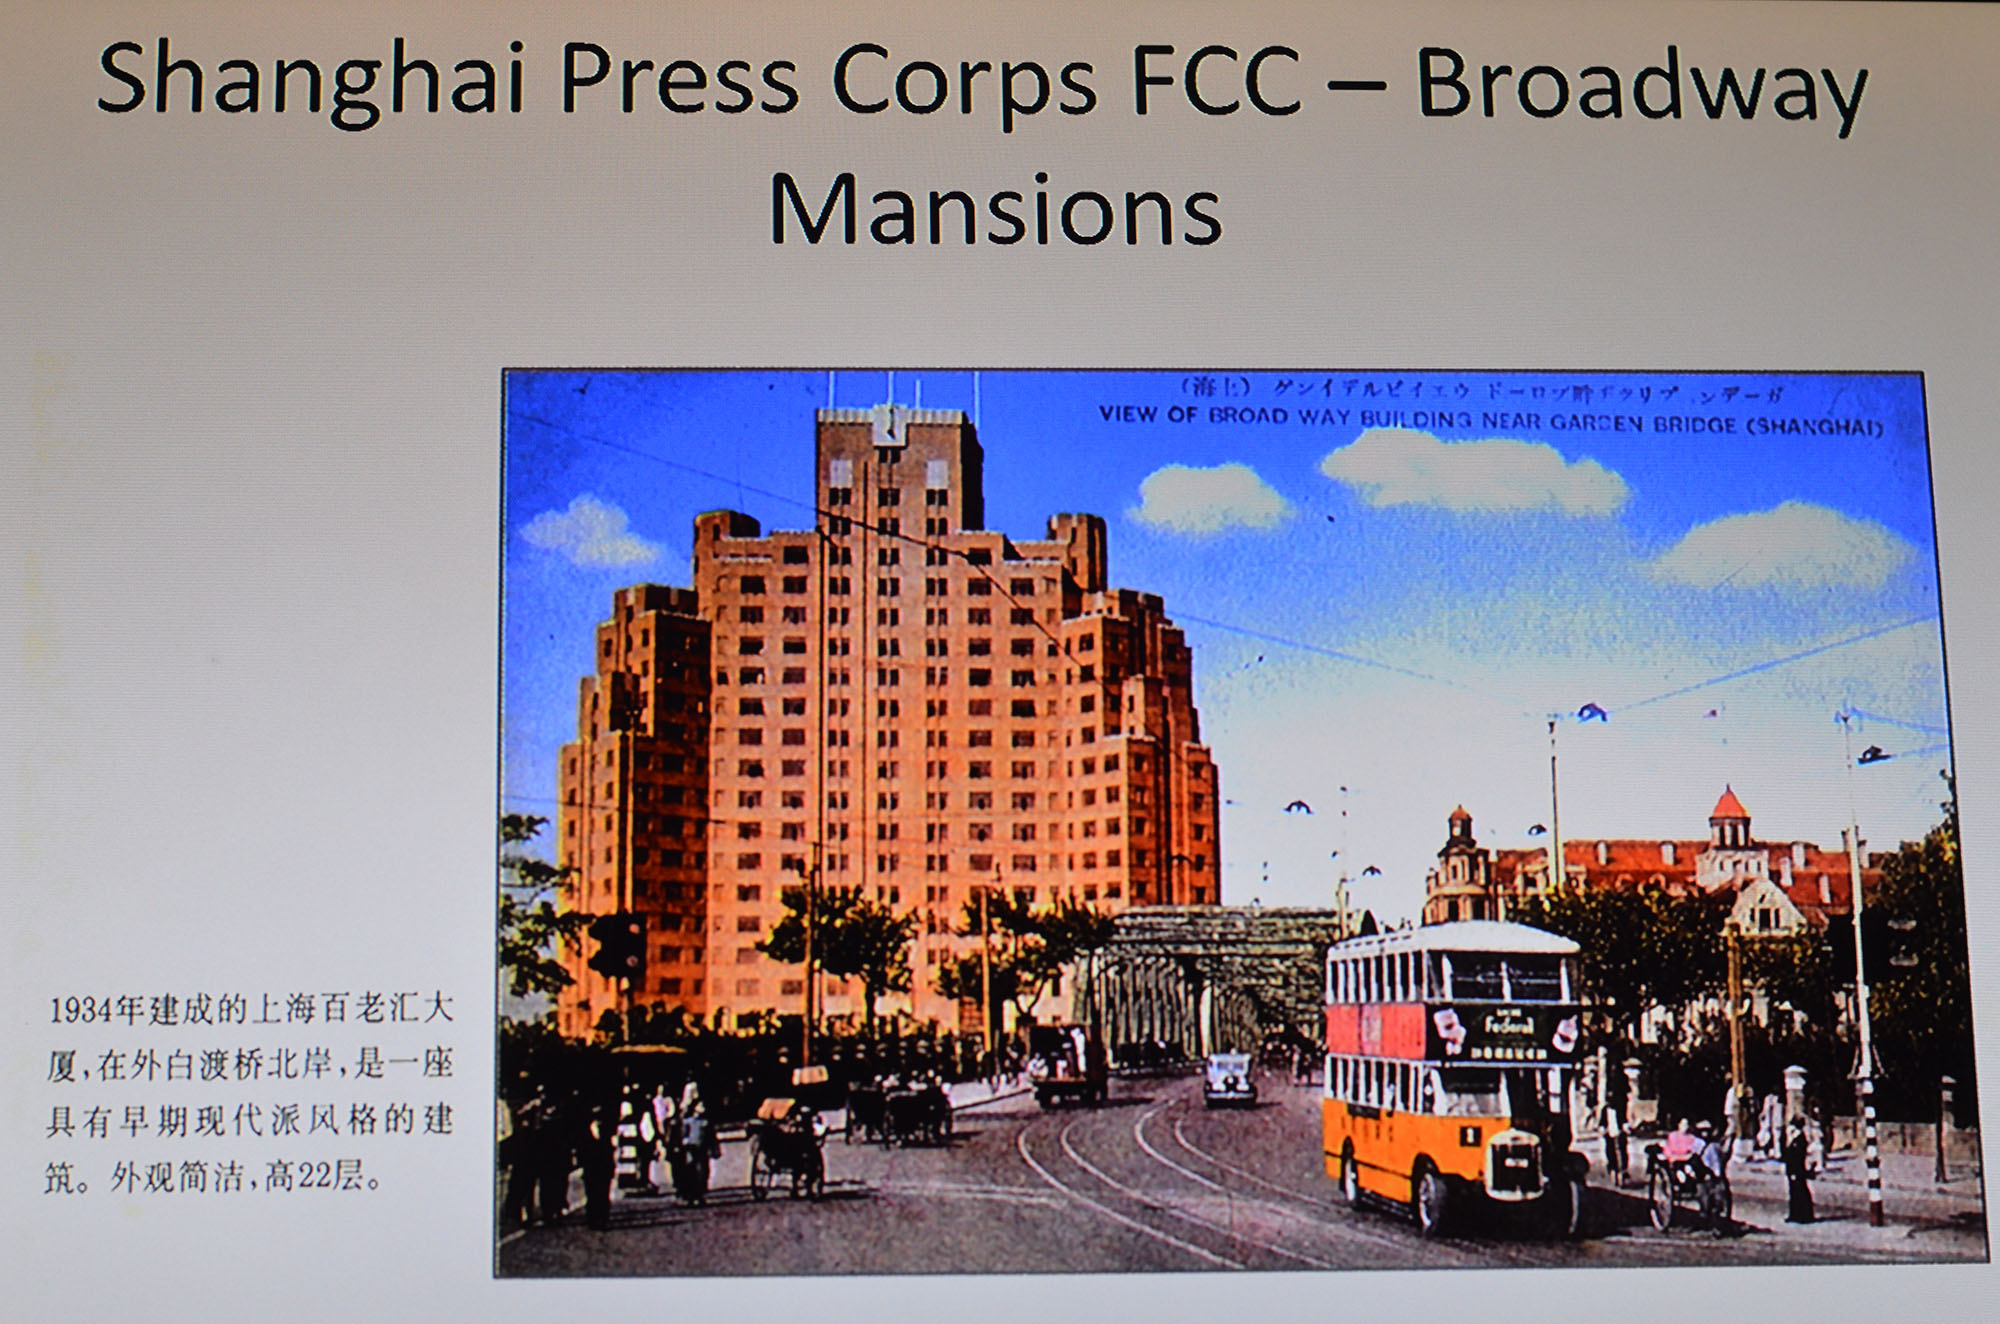 Broadway Mansions, home to the Shanghai FCC during World war Two. The club later became the Hong Kong FCC. Photo: Sarah Graham/FCC